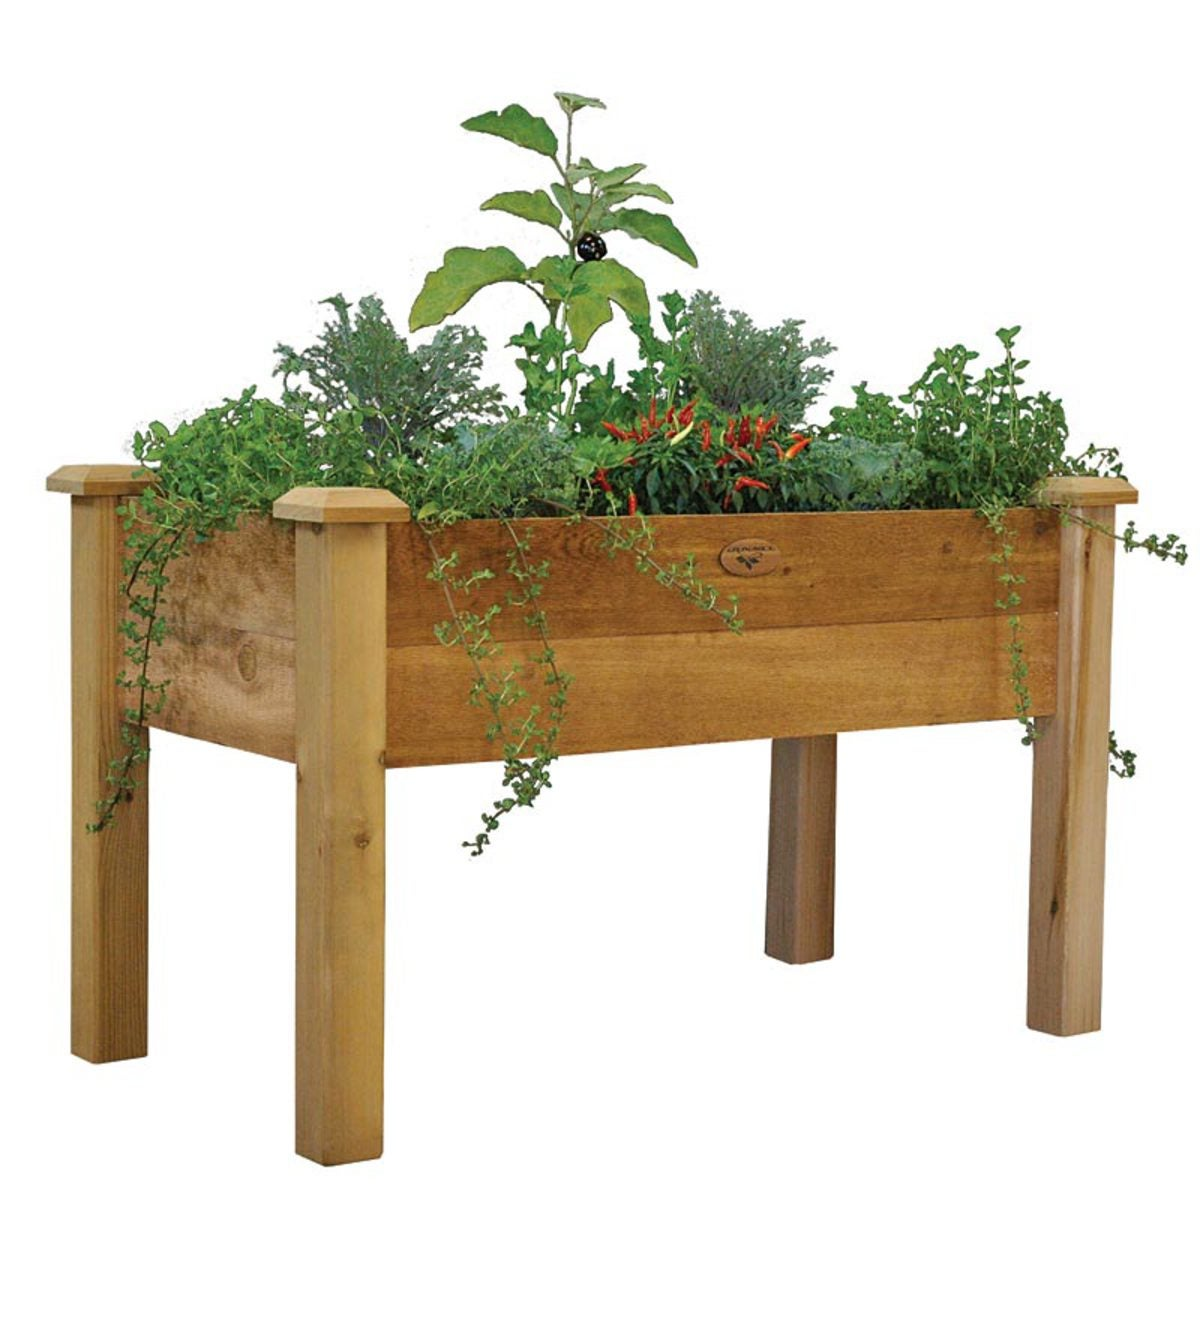 American-Made Rustic Elevated Garden Bed | PlowHearth